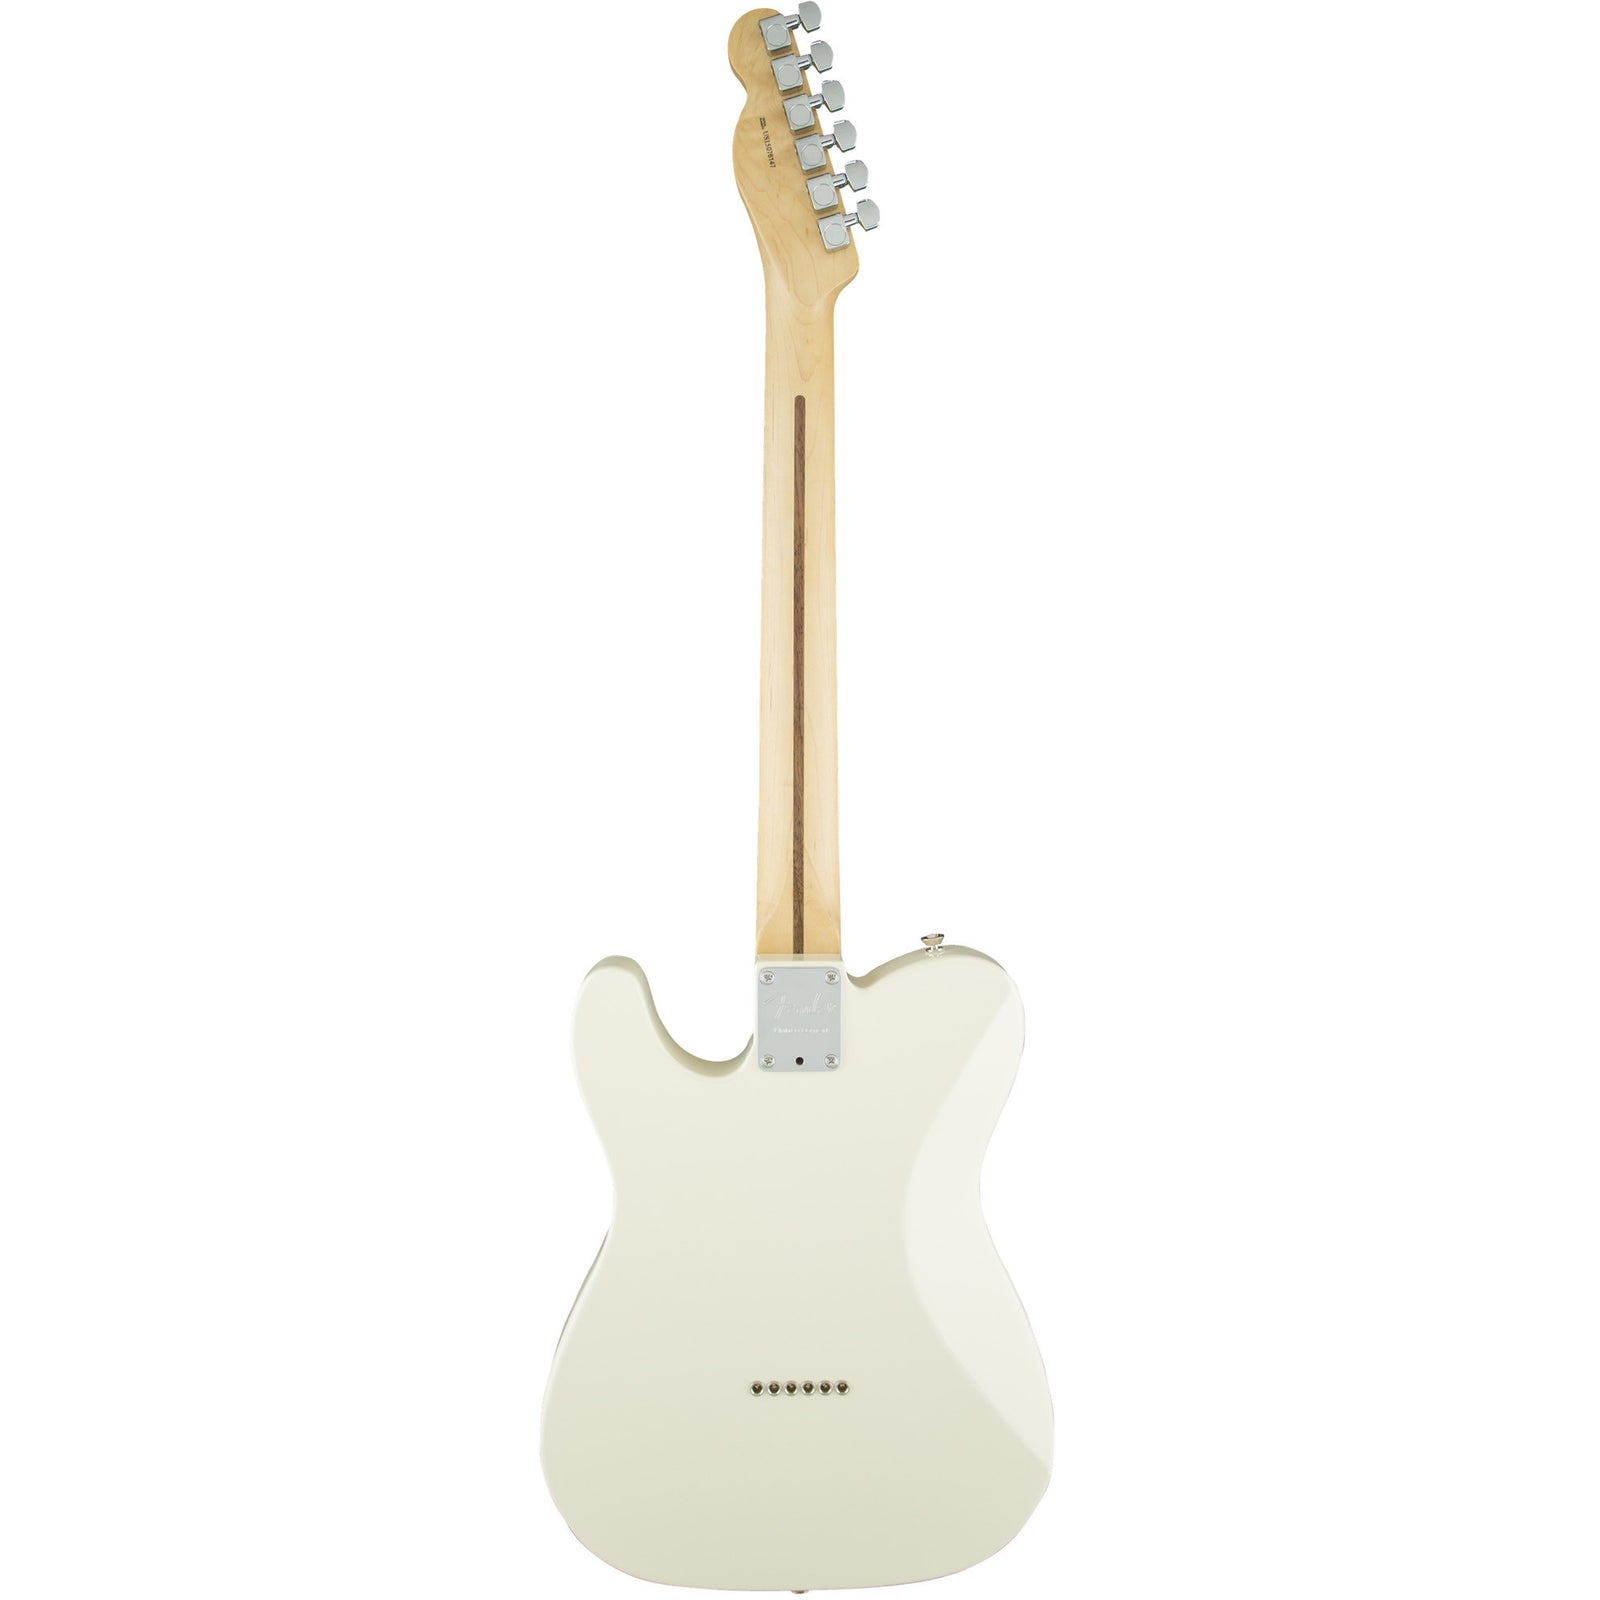 Fender Limited Edition American Standard Telecaster - Rosewood Fingerboard - Olympic White